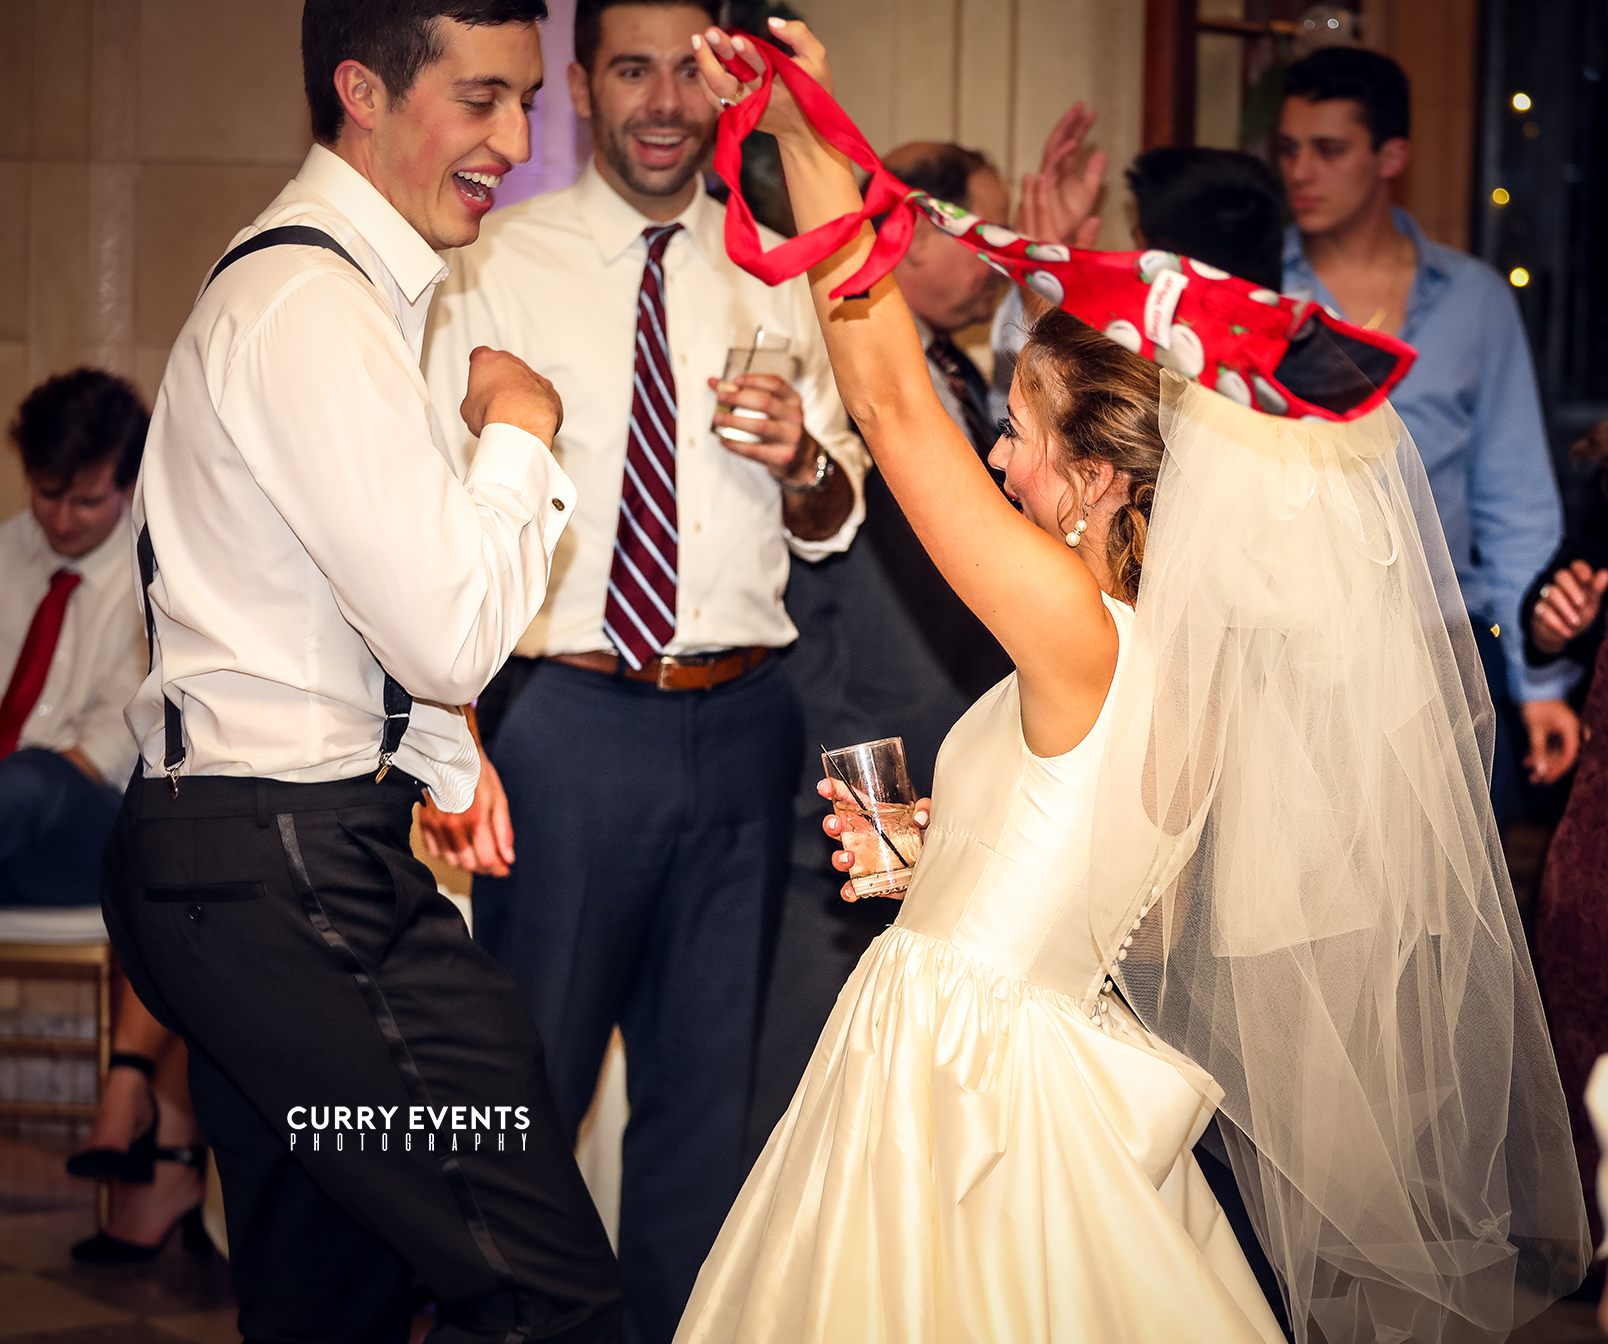 Curry Events- Bride and Groom on the Dancefloor - Aldrich Mansion